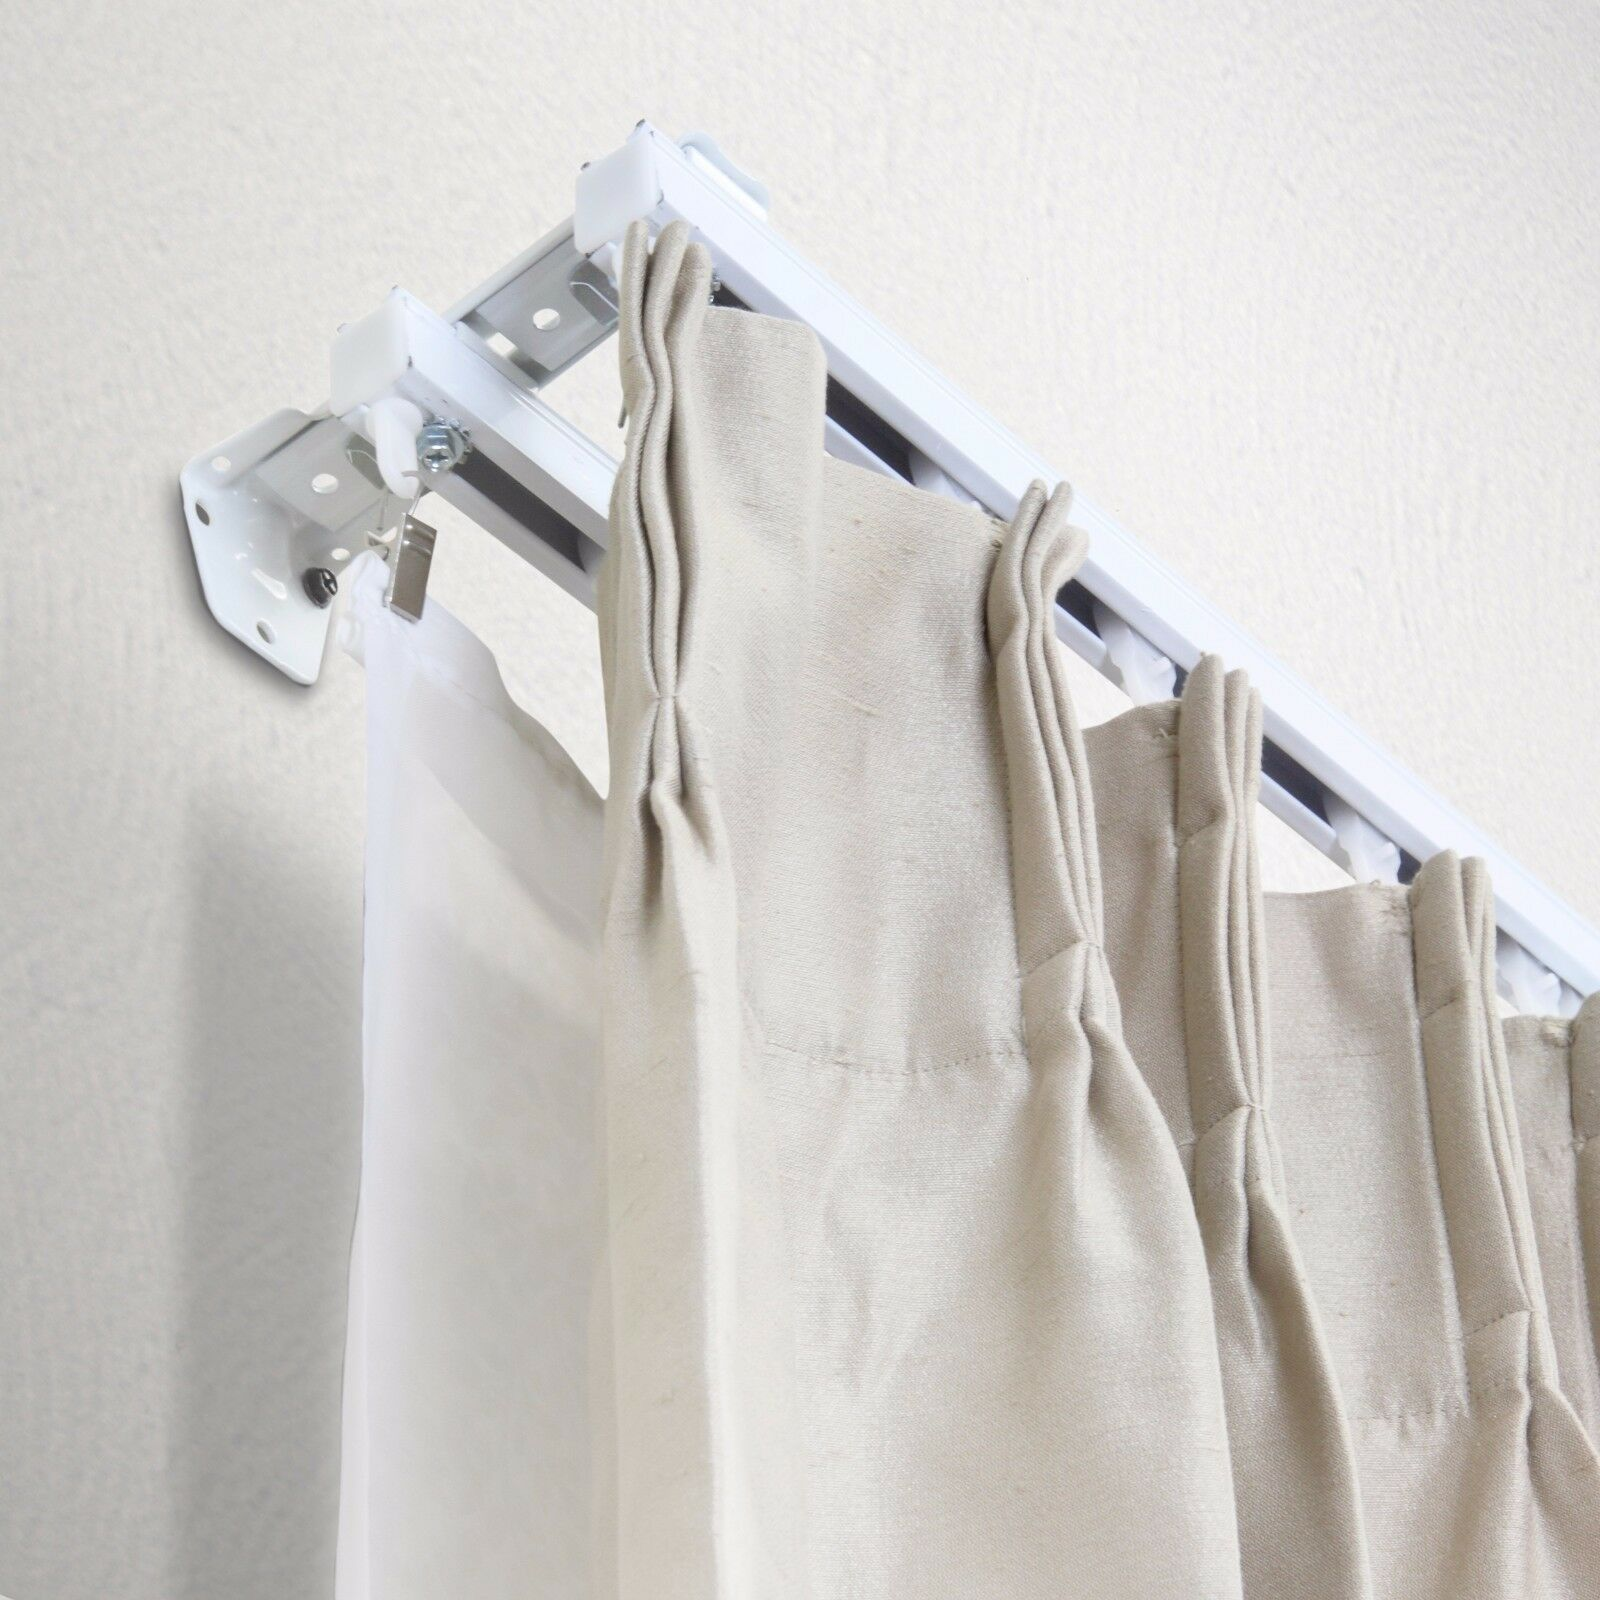 Ceiling//Wall Mount New Double 5 ft Curtain Track Kit White